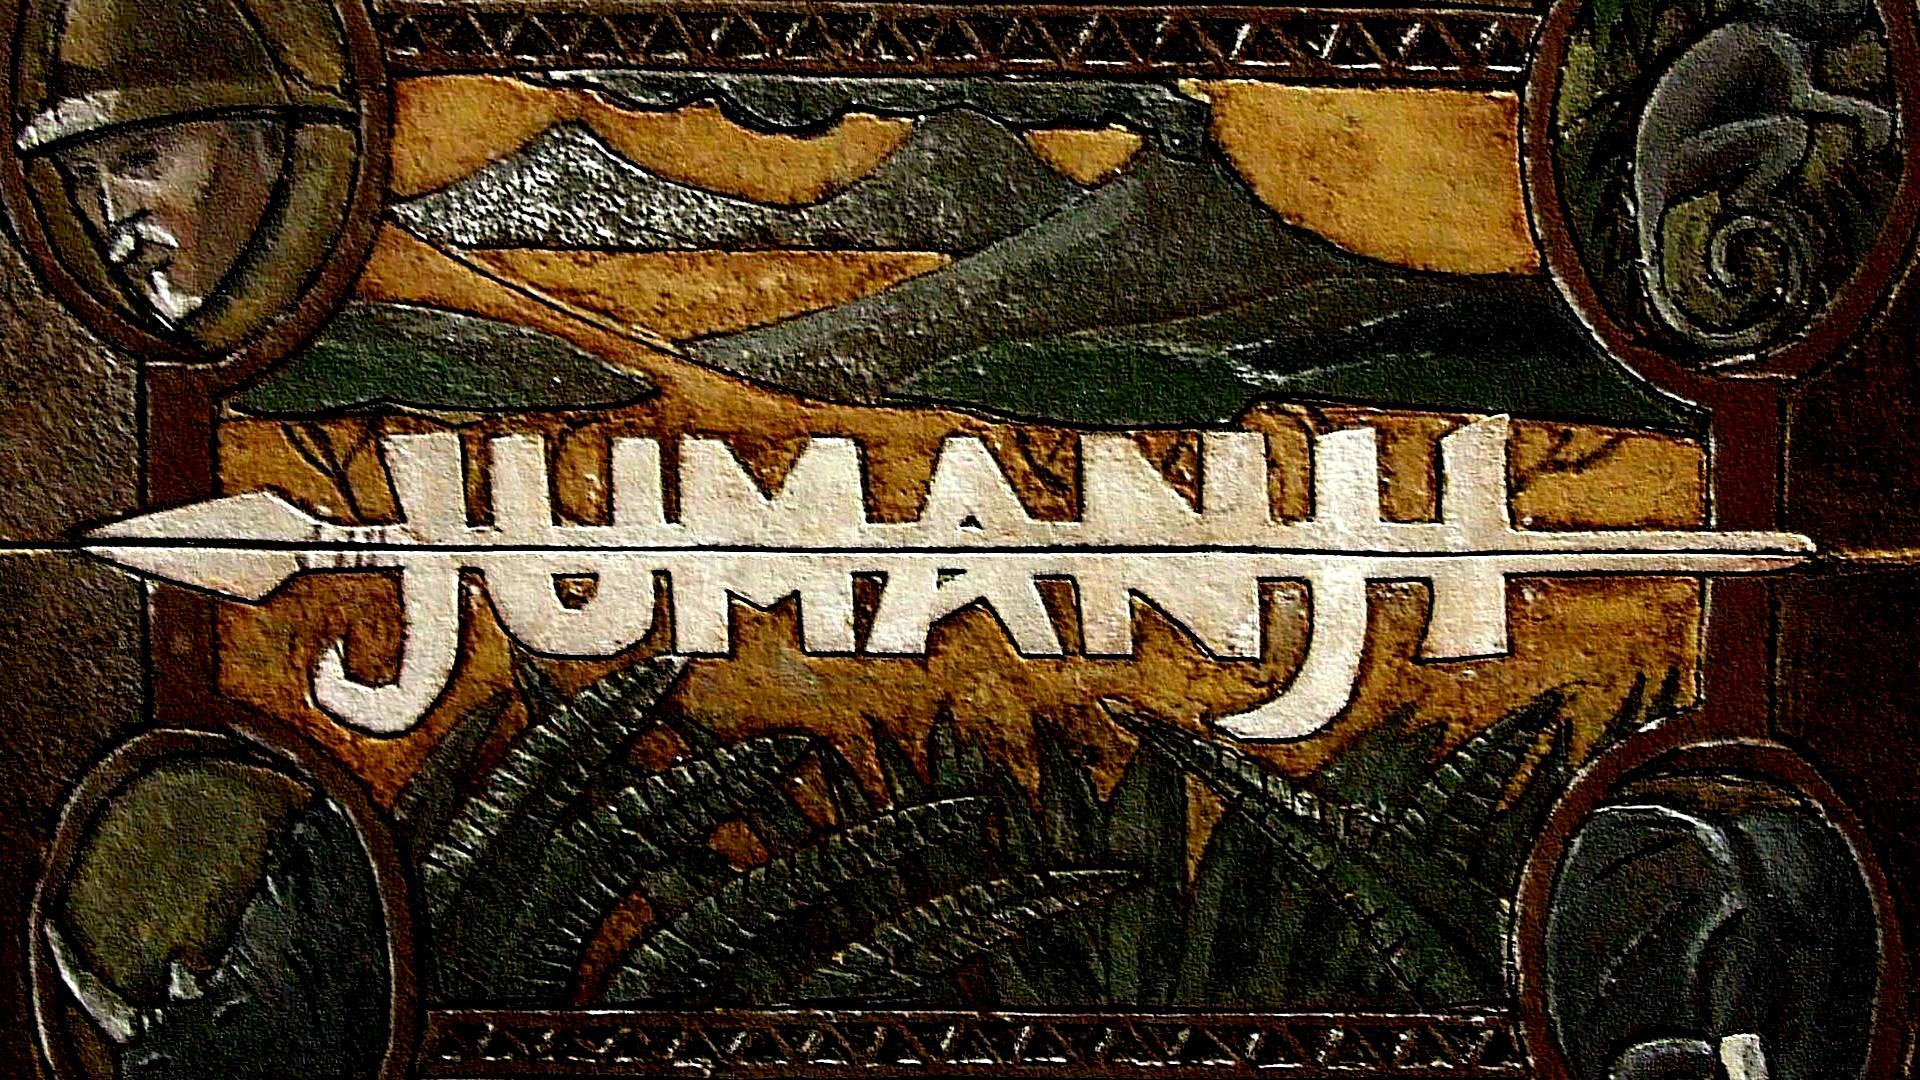 Jumanji 2017 Movies Images Photos Pictures Backgrounds